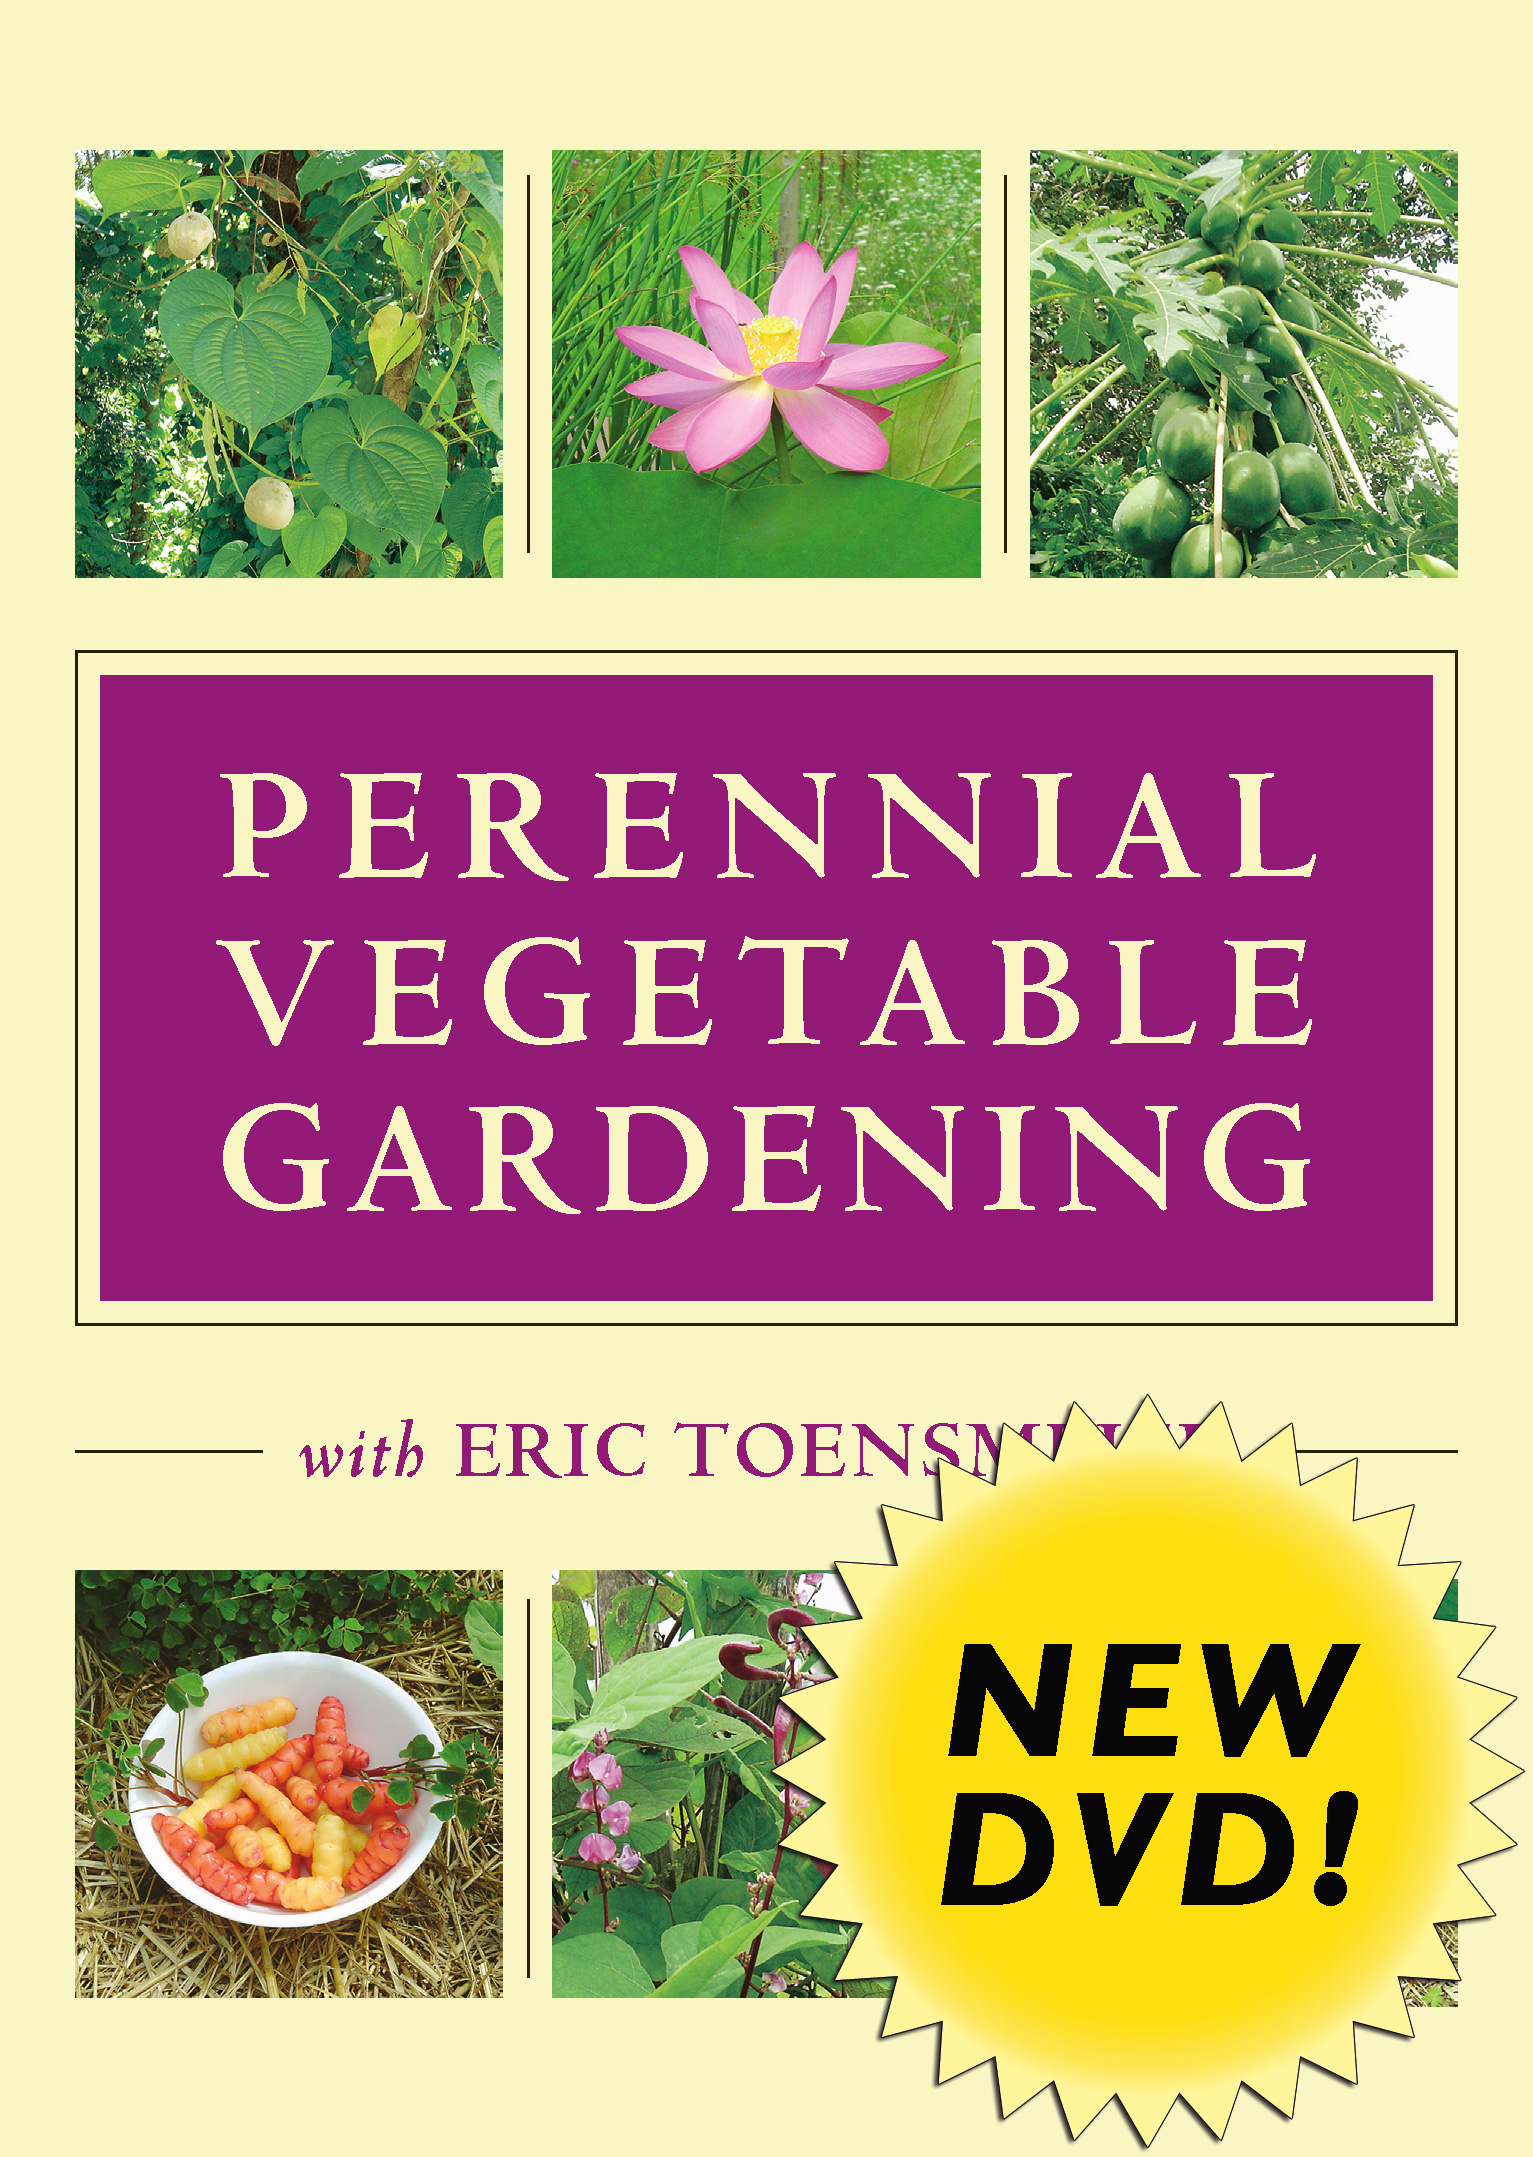 Perennial Vegetable DVD Cover